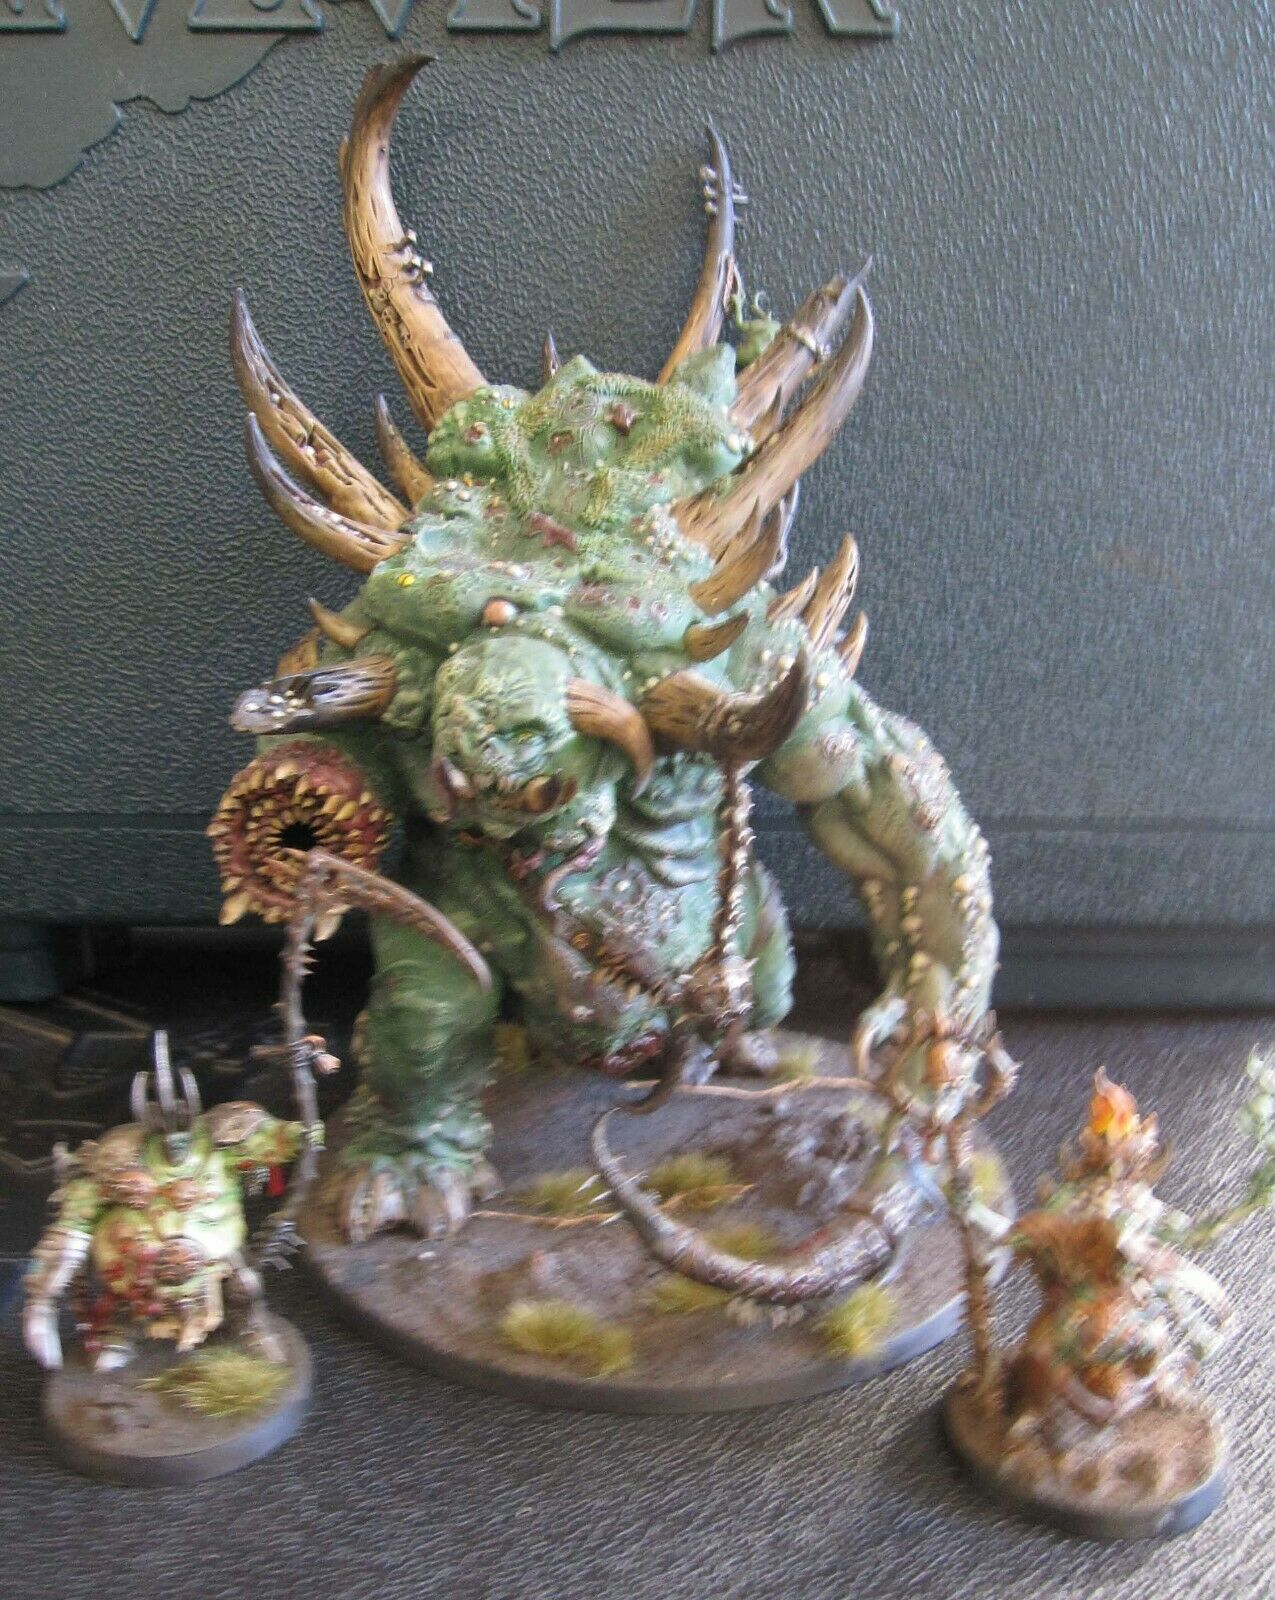 Warhammer Chaos Nurgle Age of of of Sigmar Glottkin bredhers well painted 711